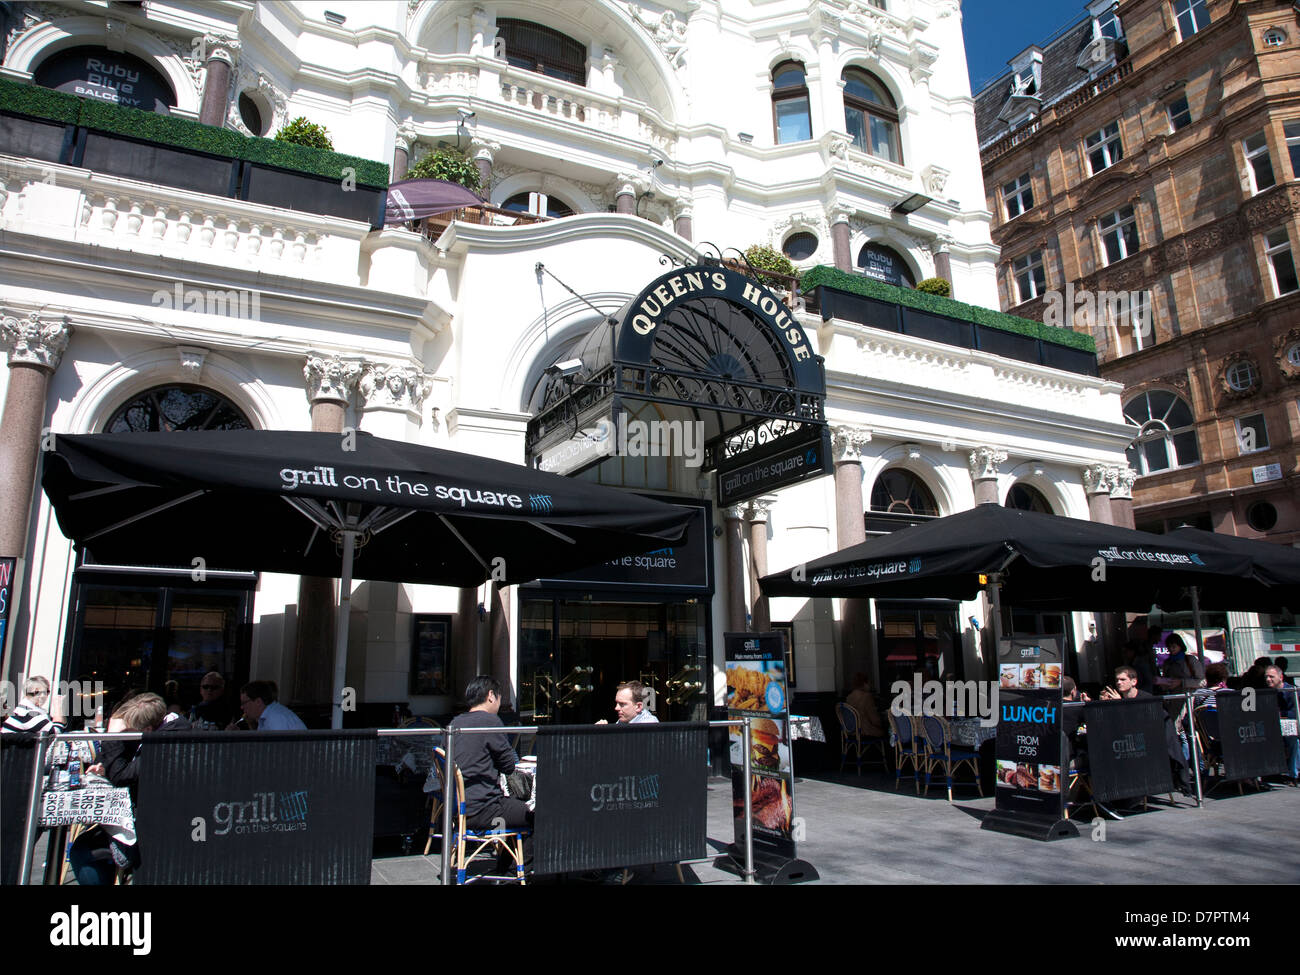 Restaurant on Leicester Square, West End, London, England, United Kingdom - Stock Image